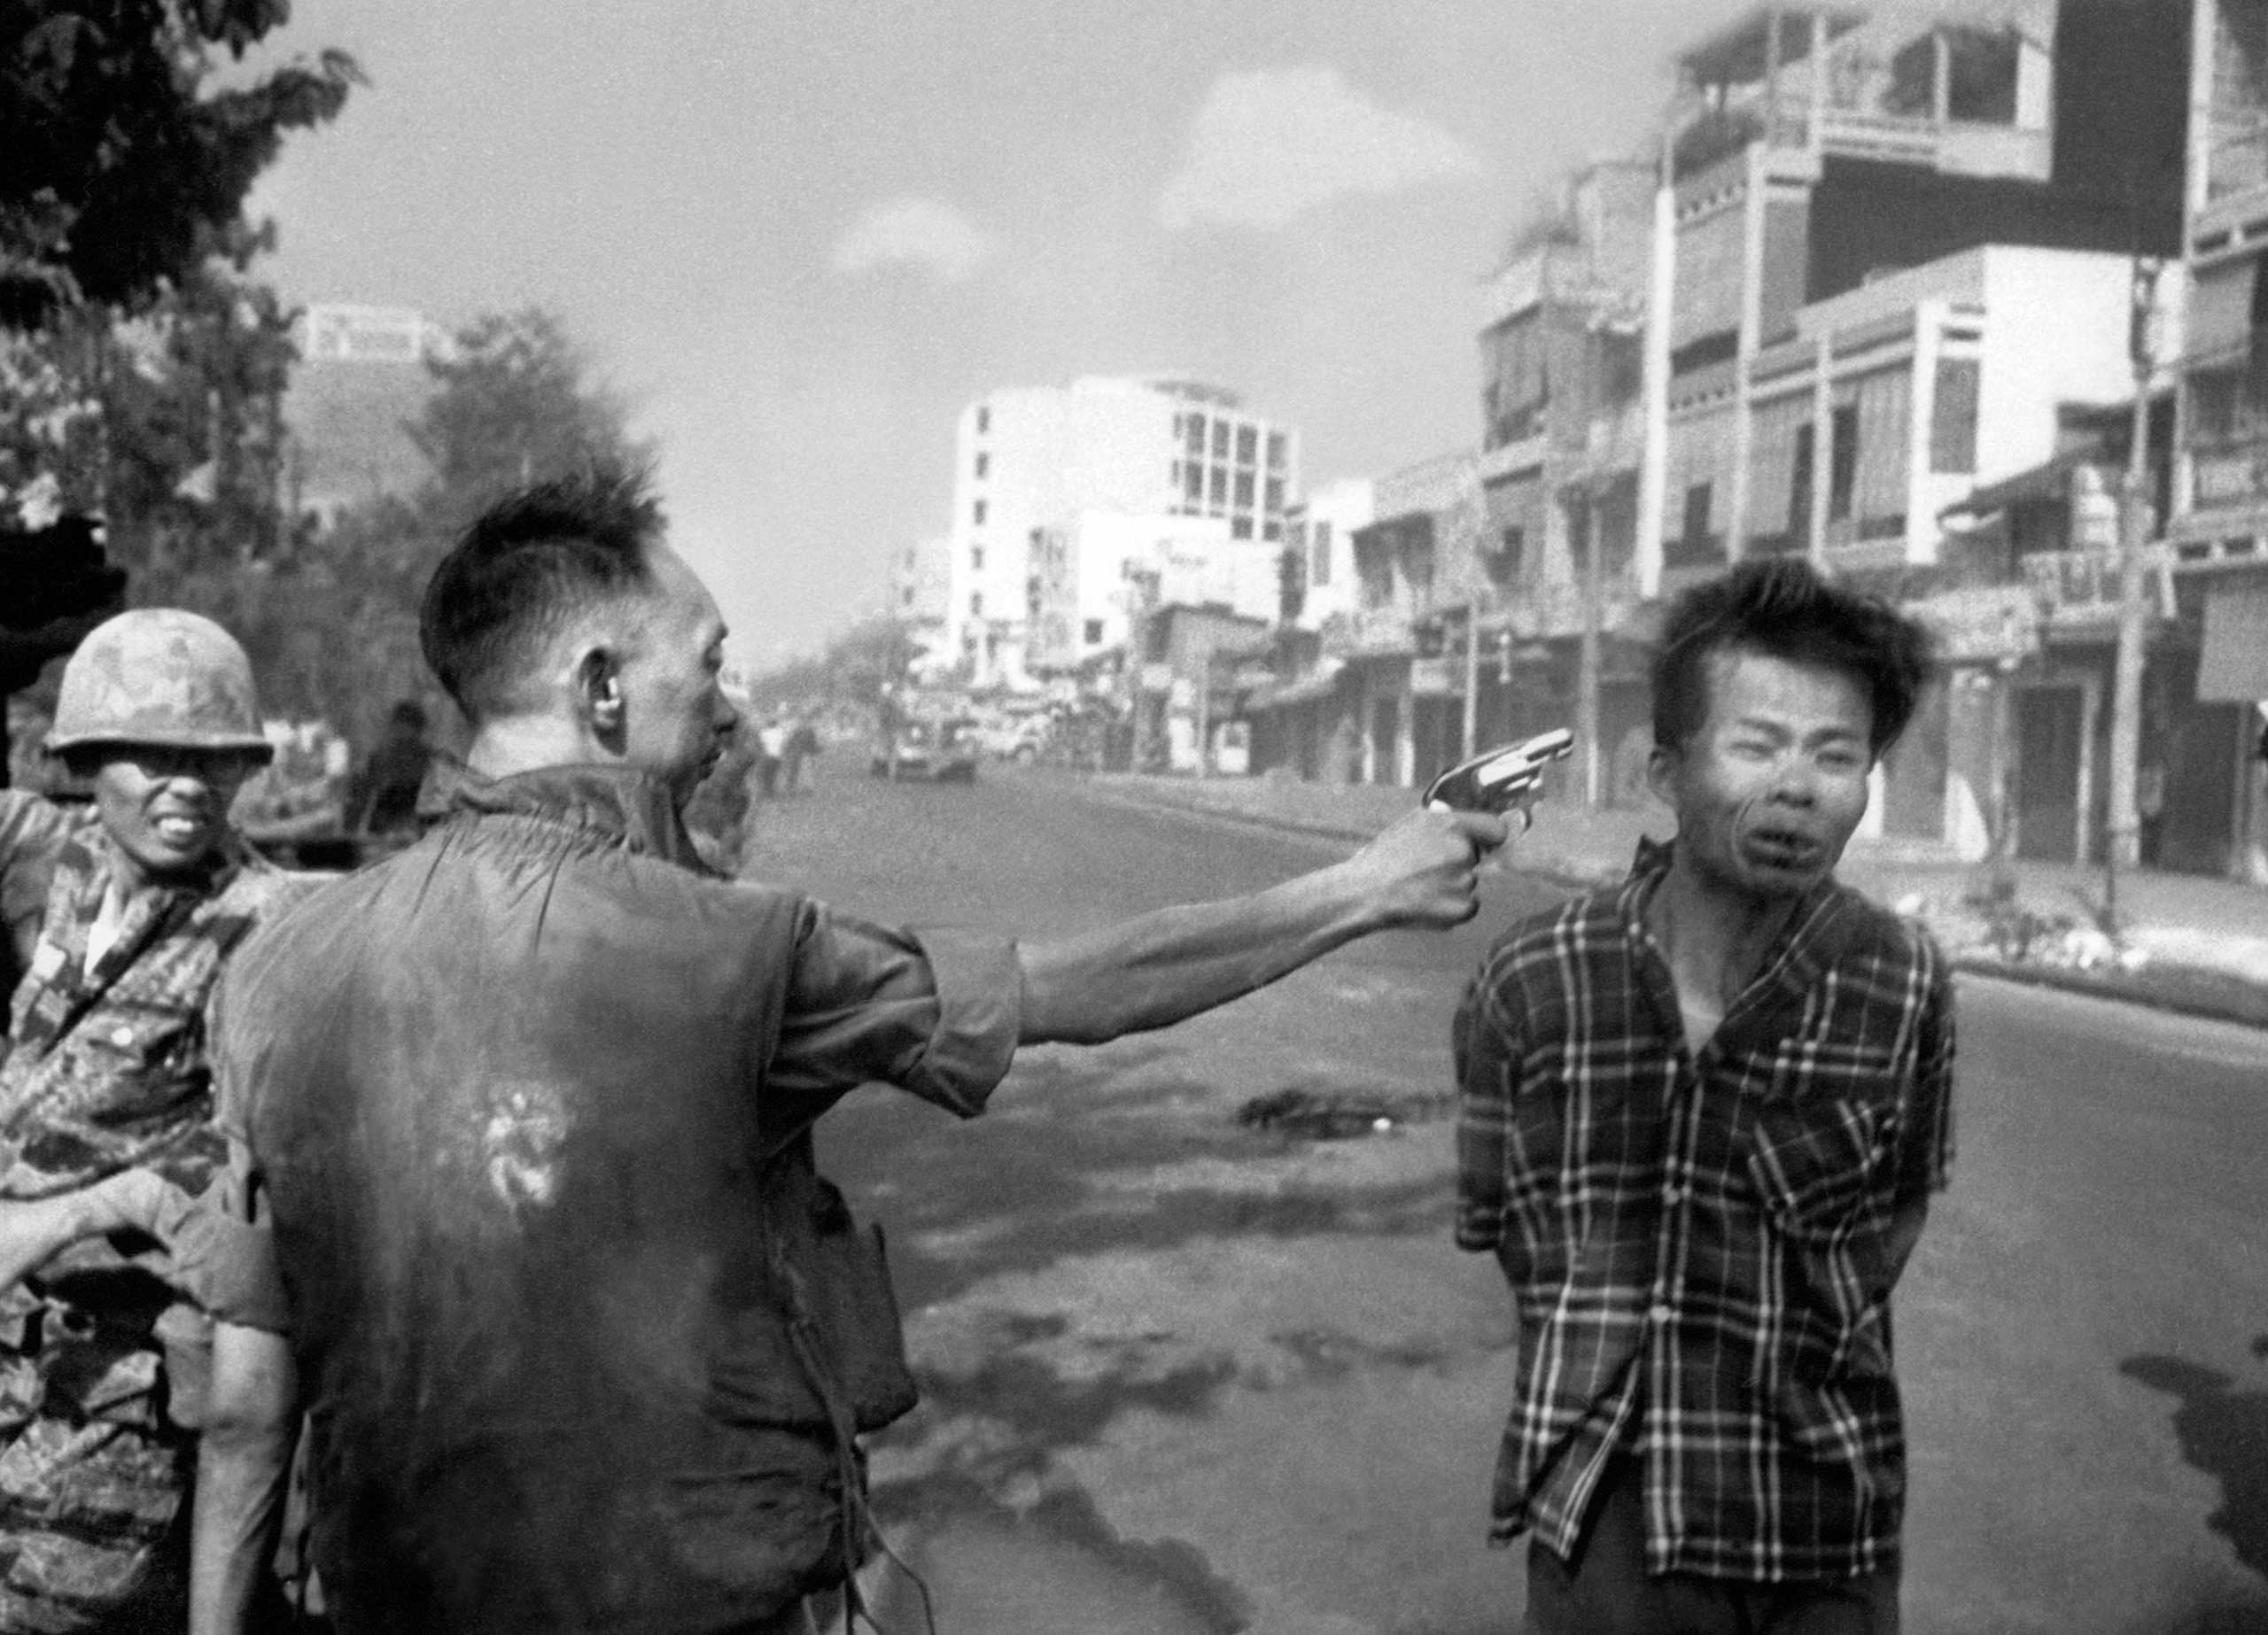 South Vietnamese General Nguyen Ngoc Loan, chief of the National Police, fires his pistol into the head of suspected Viet Cong officer Nguyen Van Lem (also known as Bay Lop) on a Saigon street on Feb. 1, 1968.